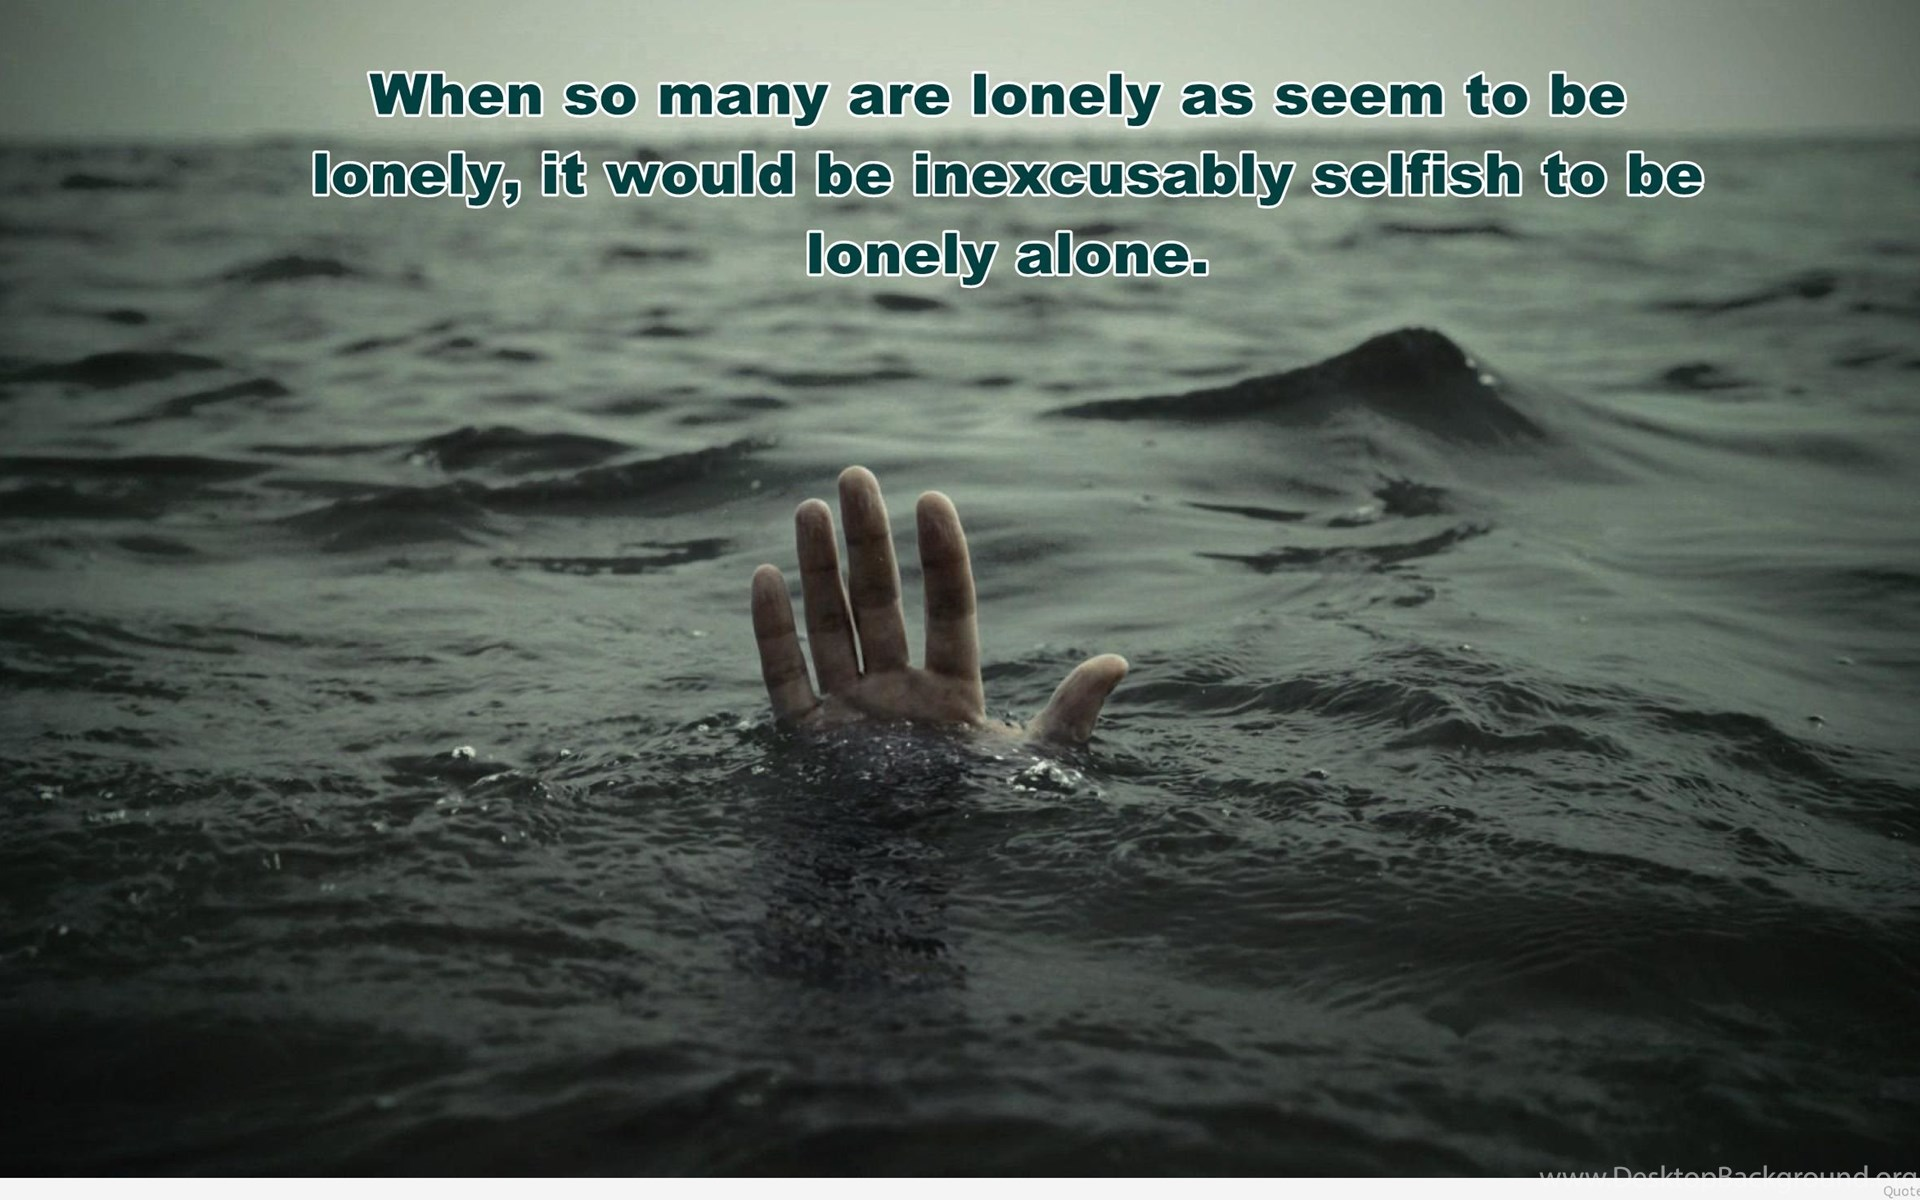 Very Sad Alone Quotes Wallpapers And Images Hd Top Desktop Background